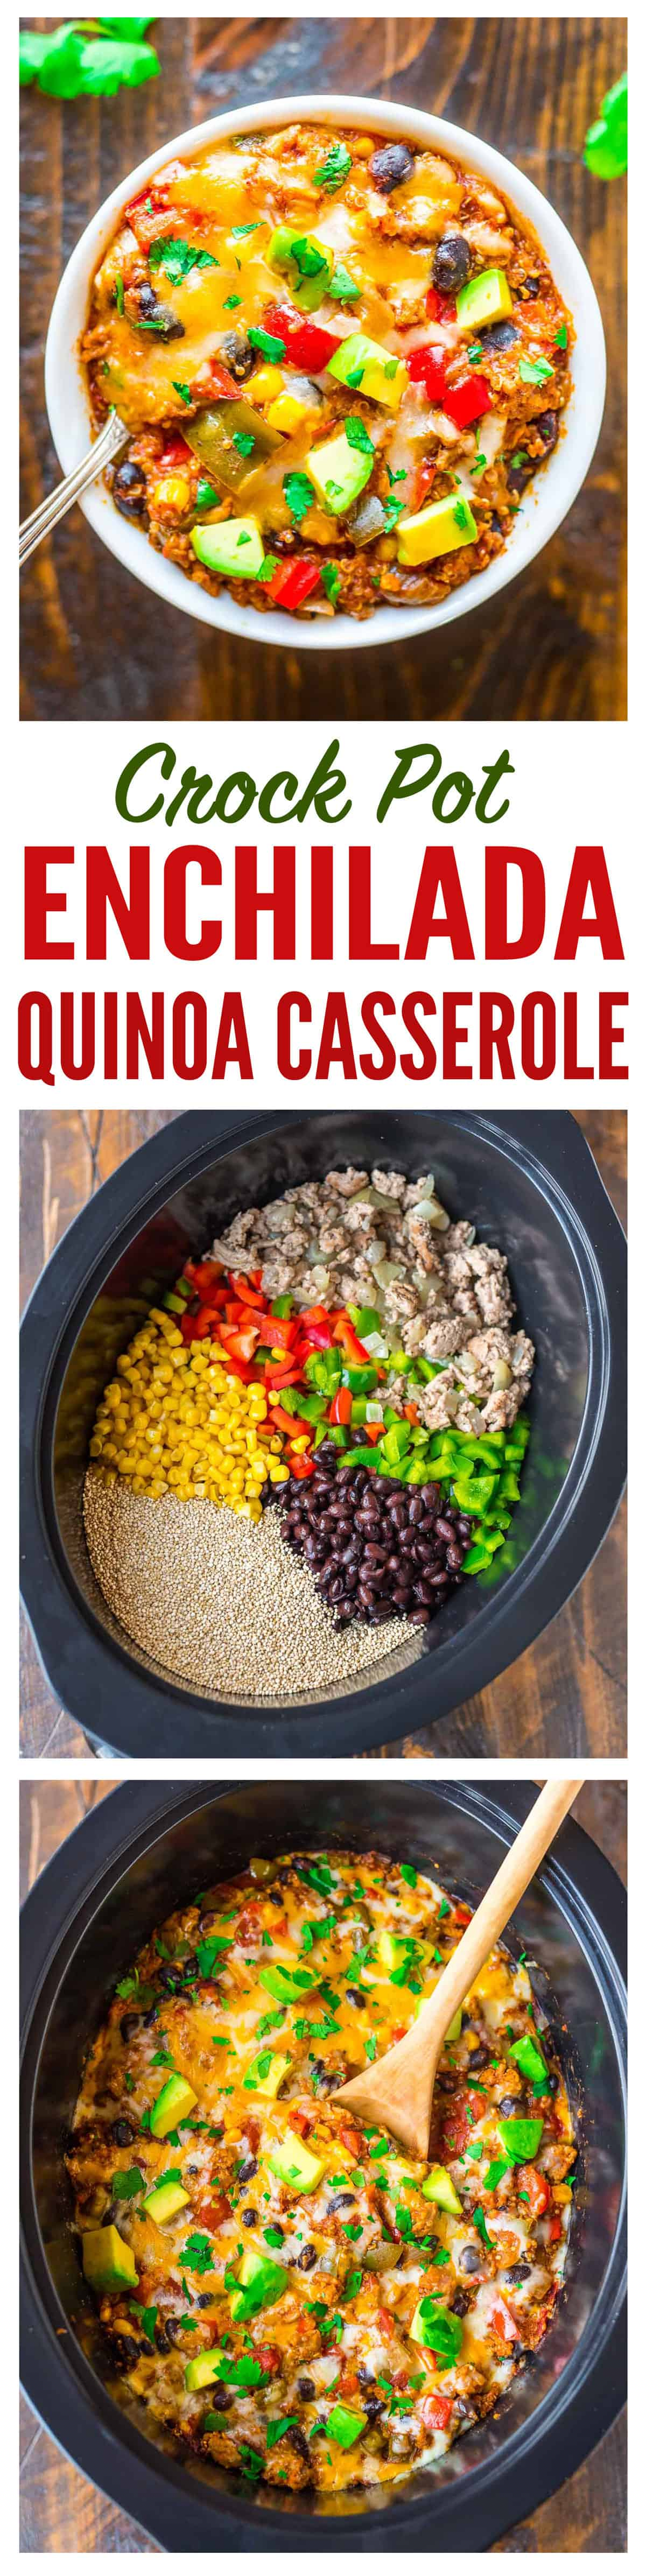 Super easy and DELICIOUS Crock Pot Mexican Casserole with quinoa, black beans, and chicken or turkey. Healthy comfort food, gluten free, and our whole family LOVES it!